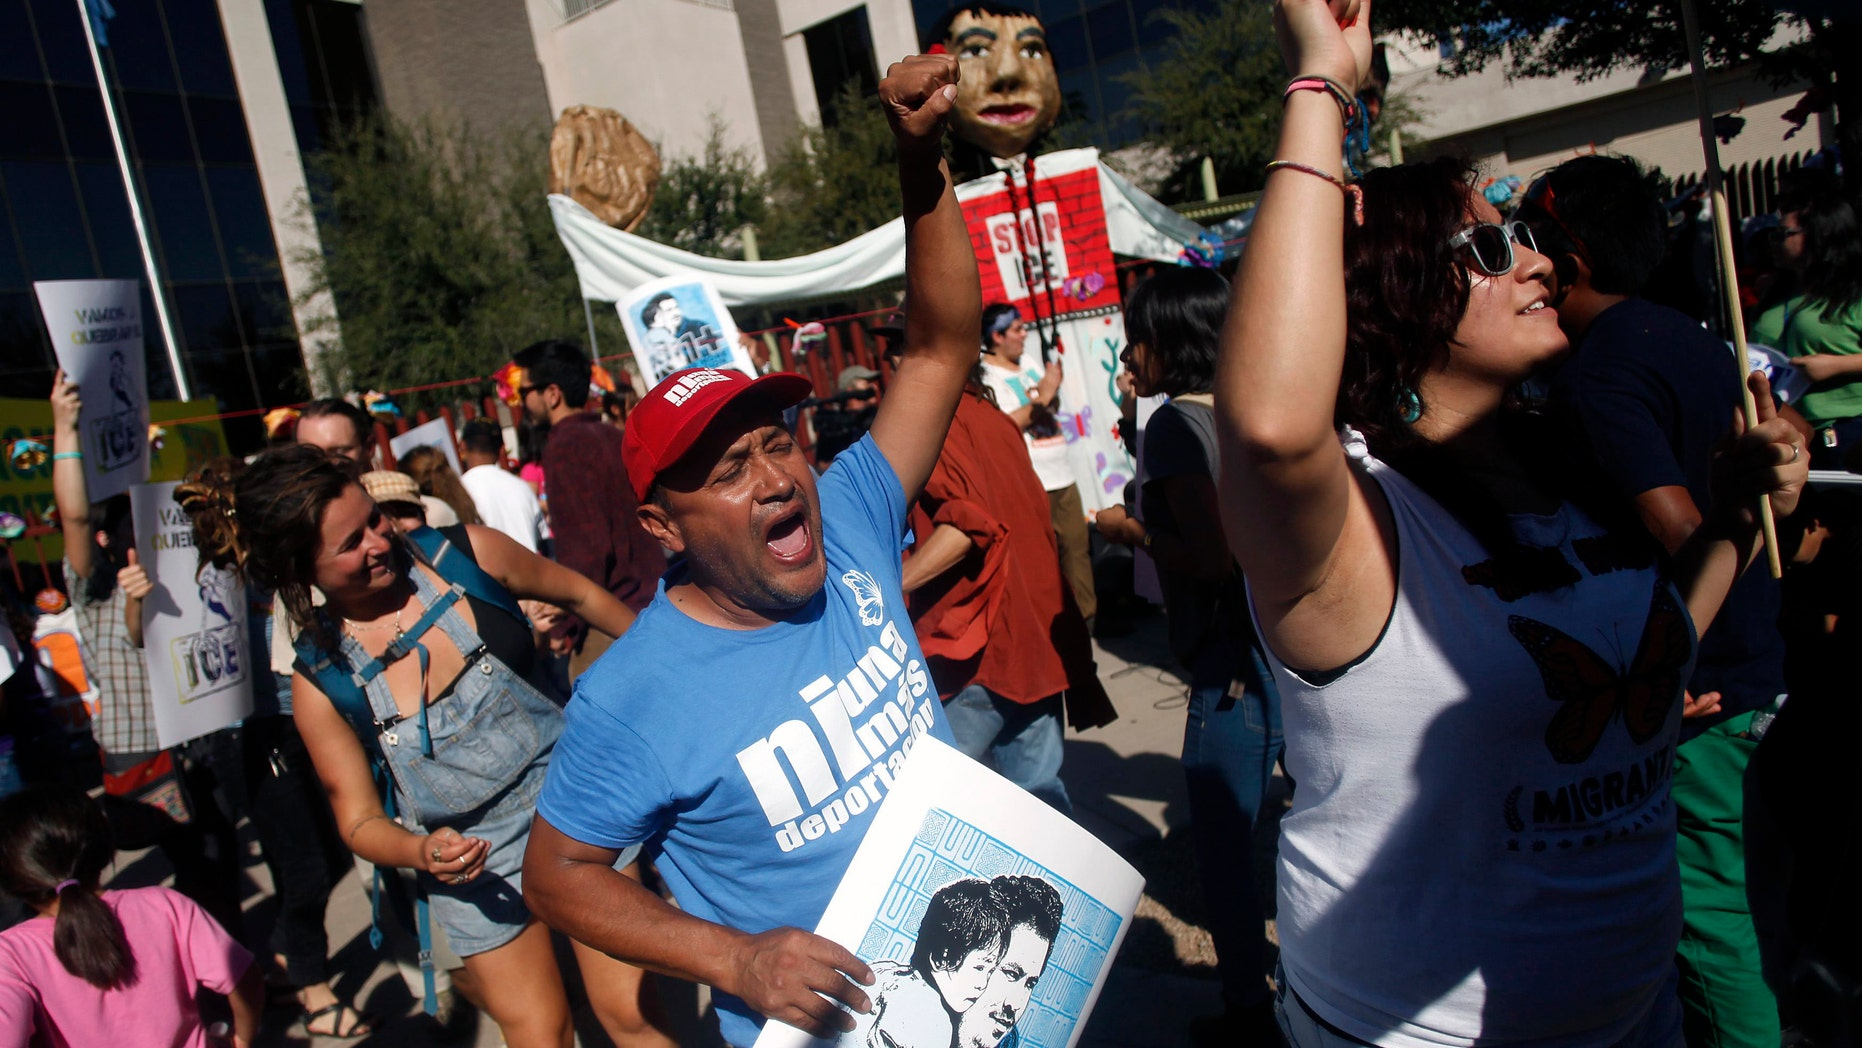 People protest against Immigration and Customs Enforcement at their headquarters in Phoenix, Arizona October 14, 2013.